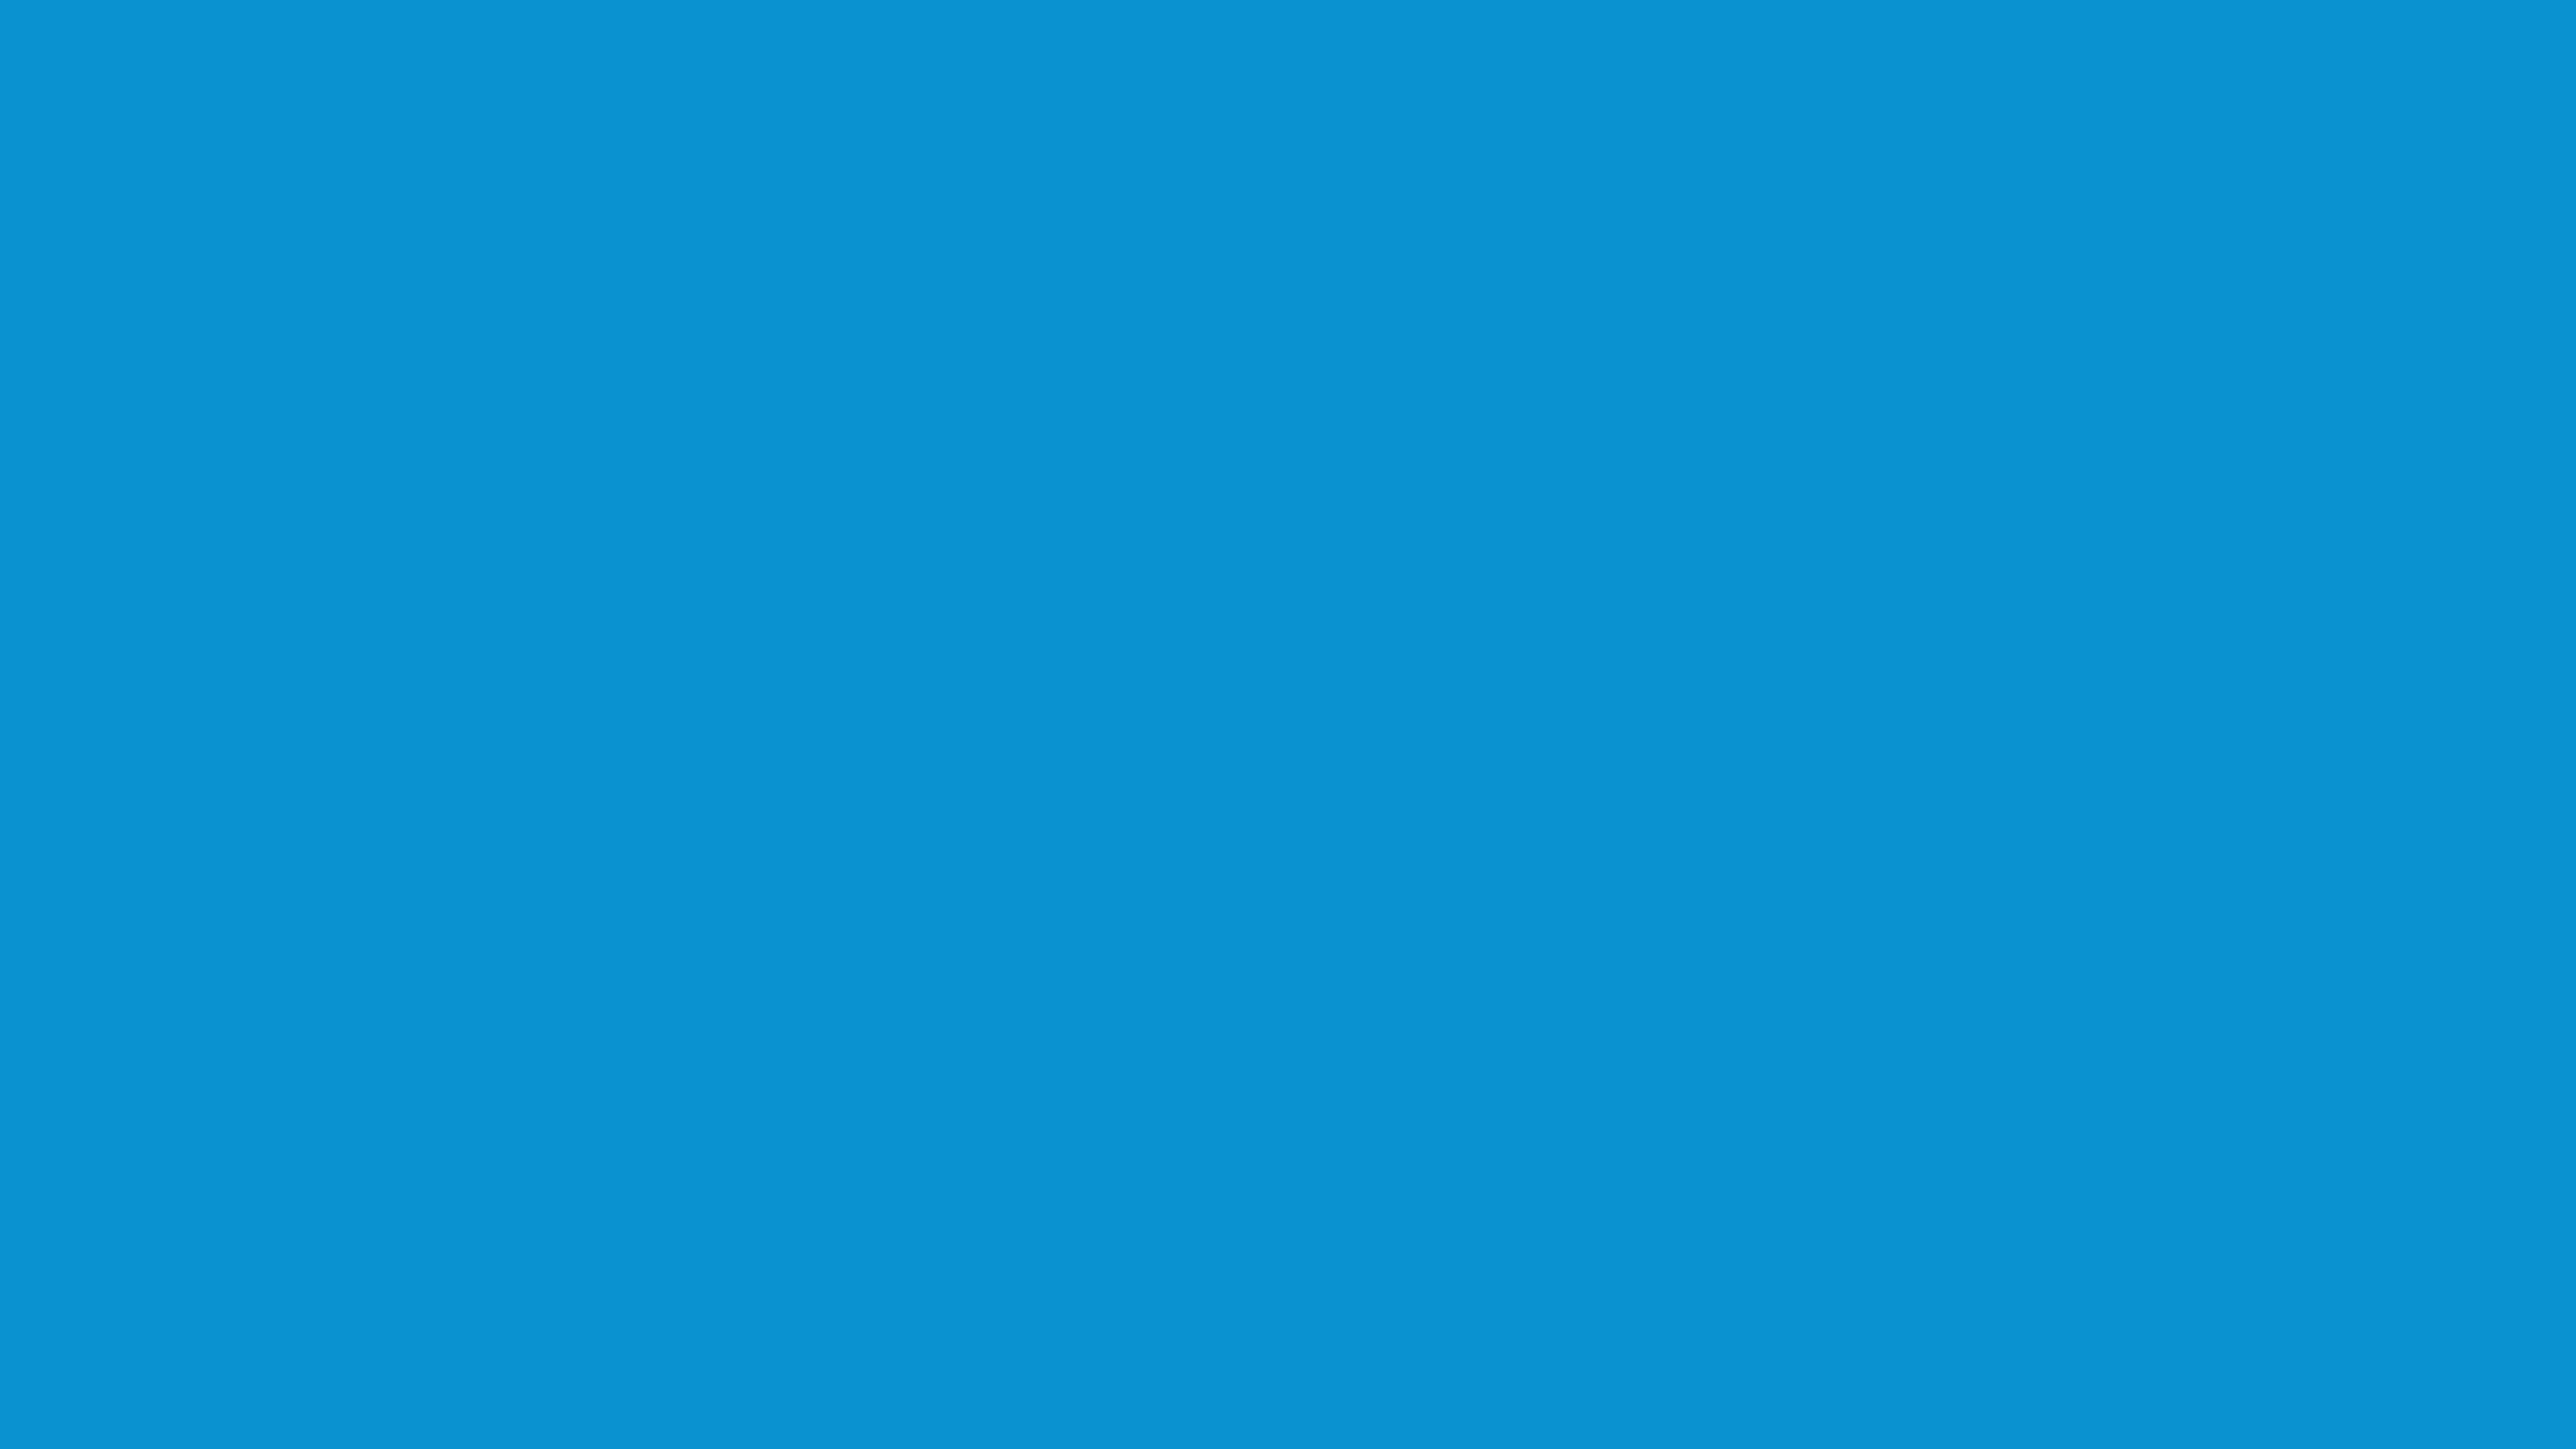 7680x4320 Rich Electric Blue Solid Color Background